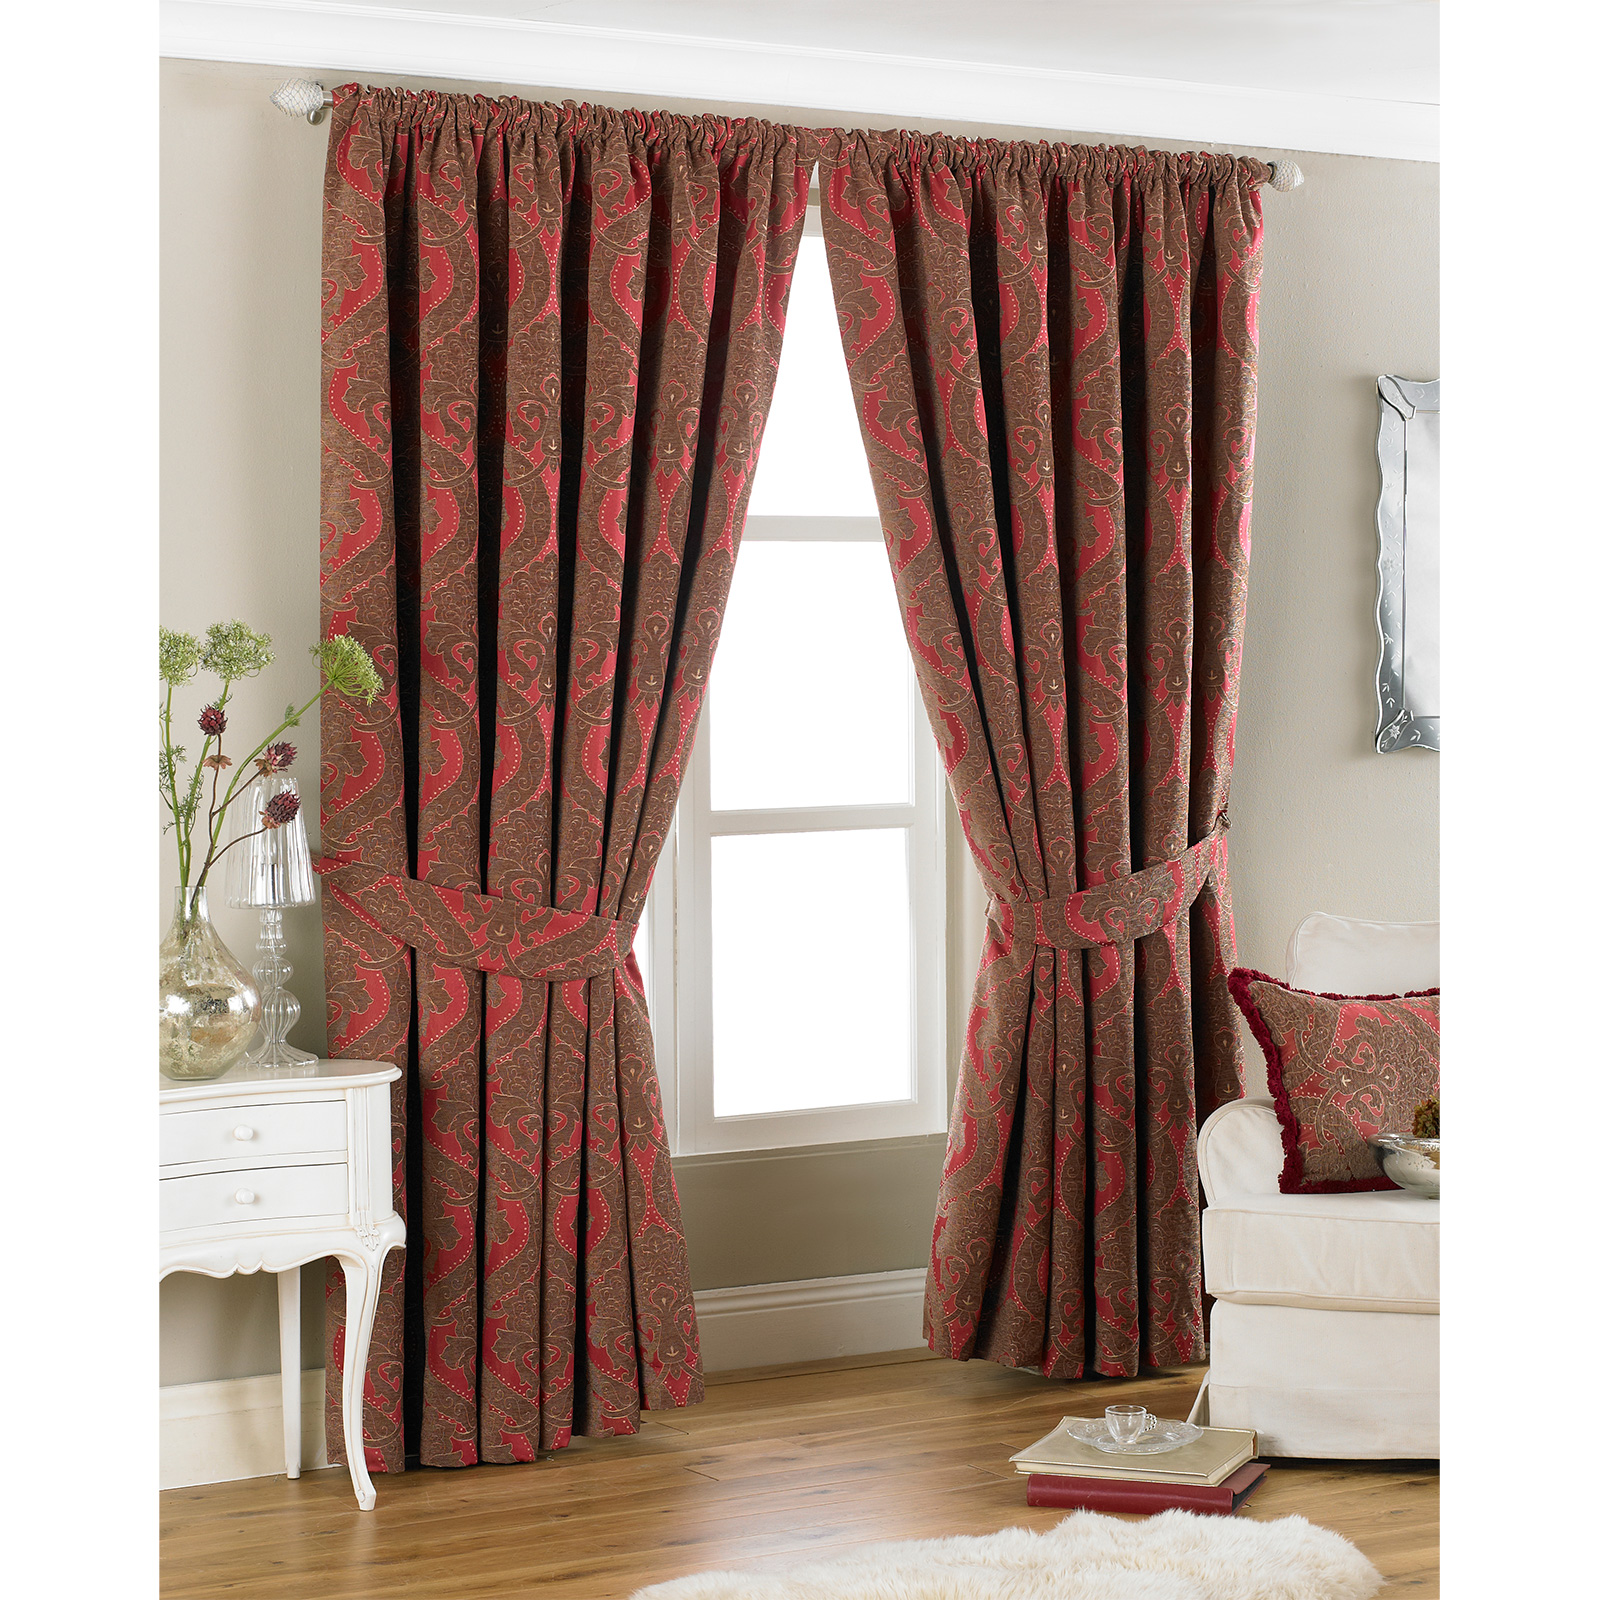 new luxury damask curtains ready made pencil pleat. Black Bedroom Furniture Sets. Home Design Ideas